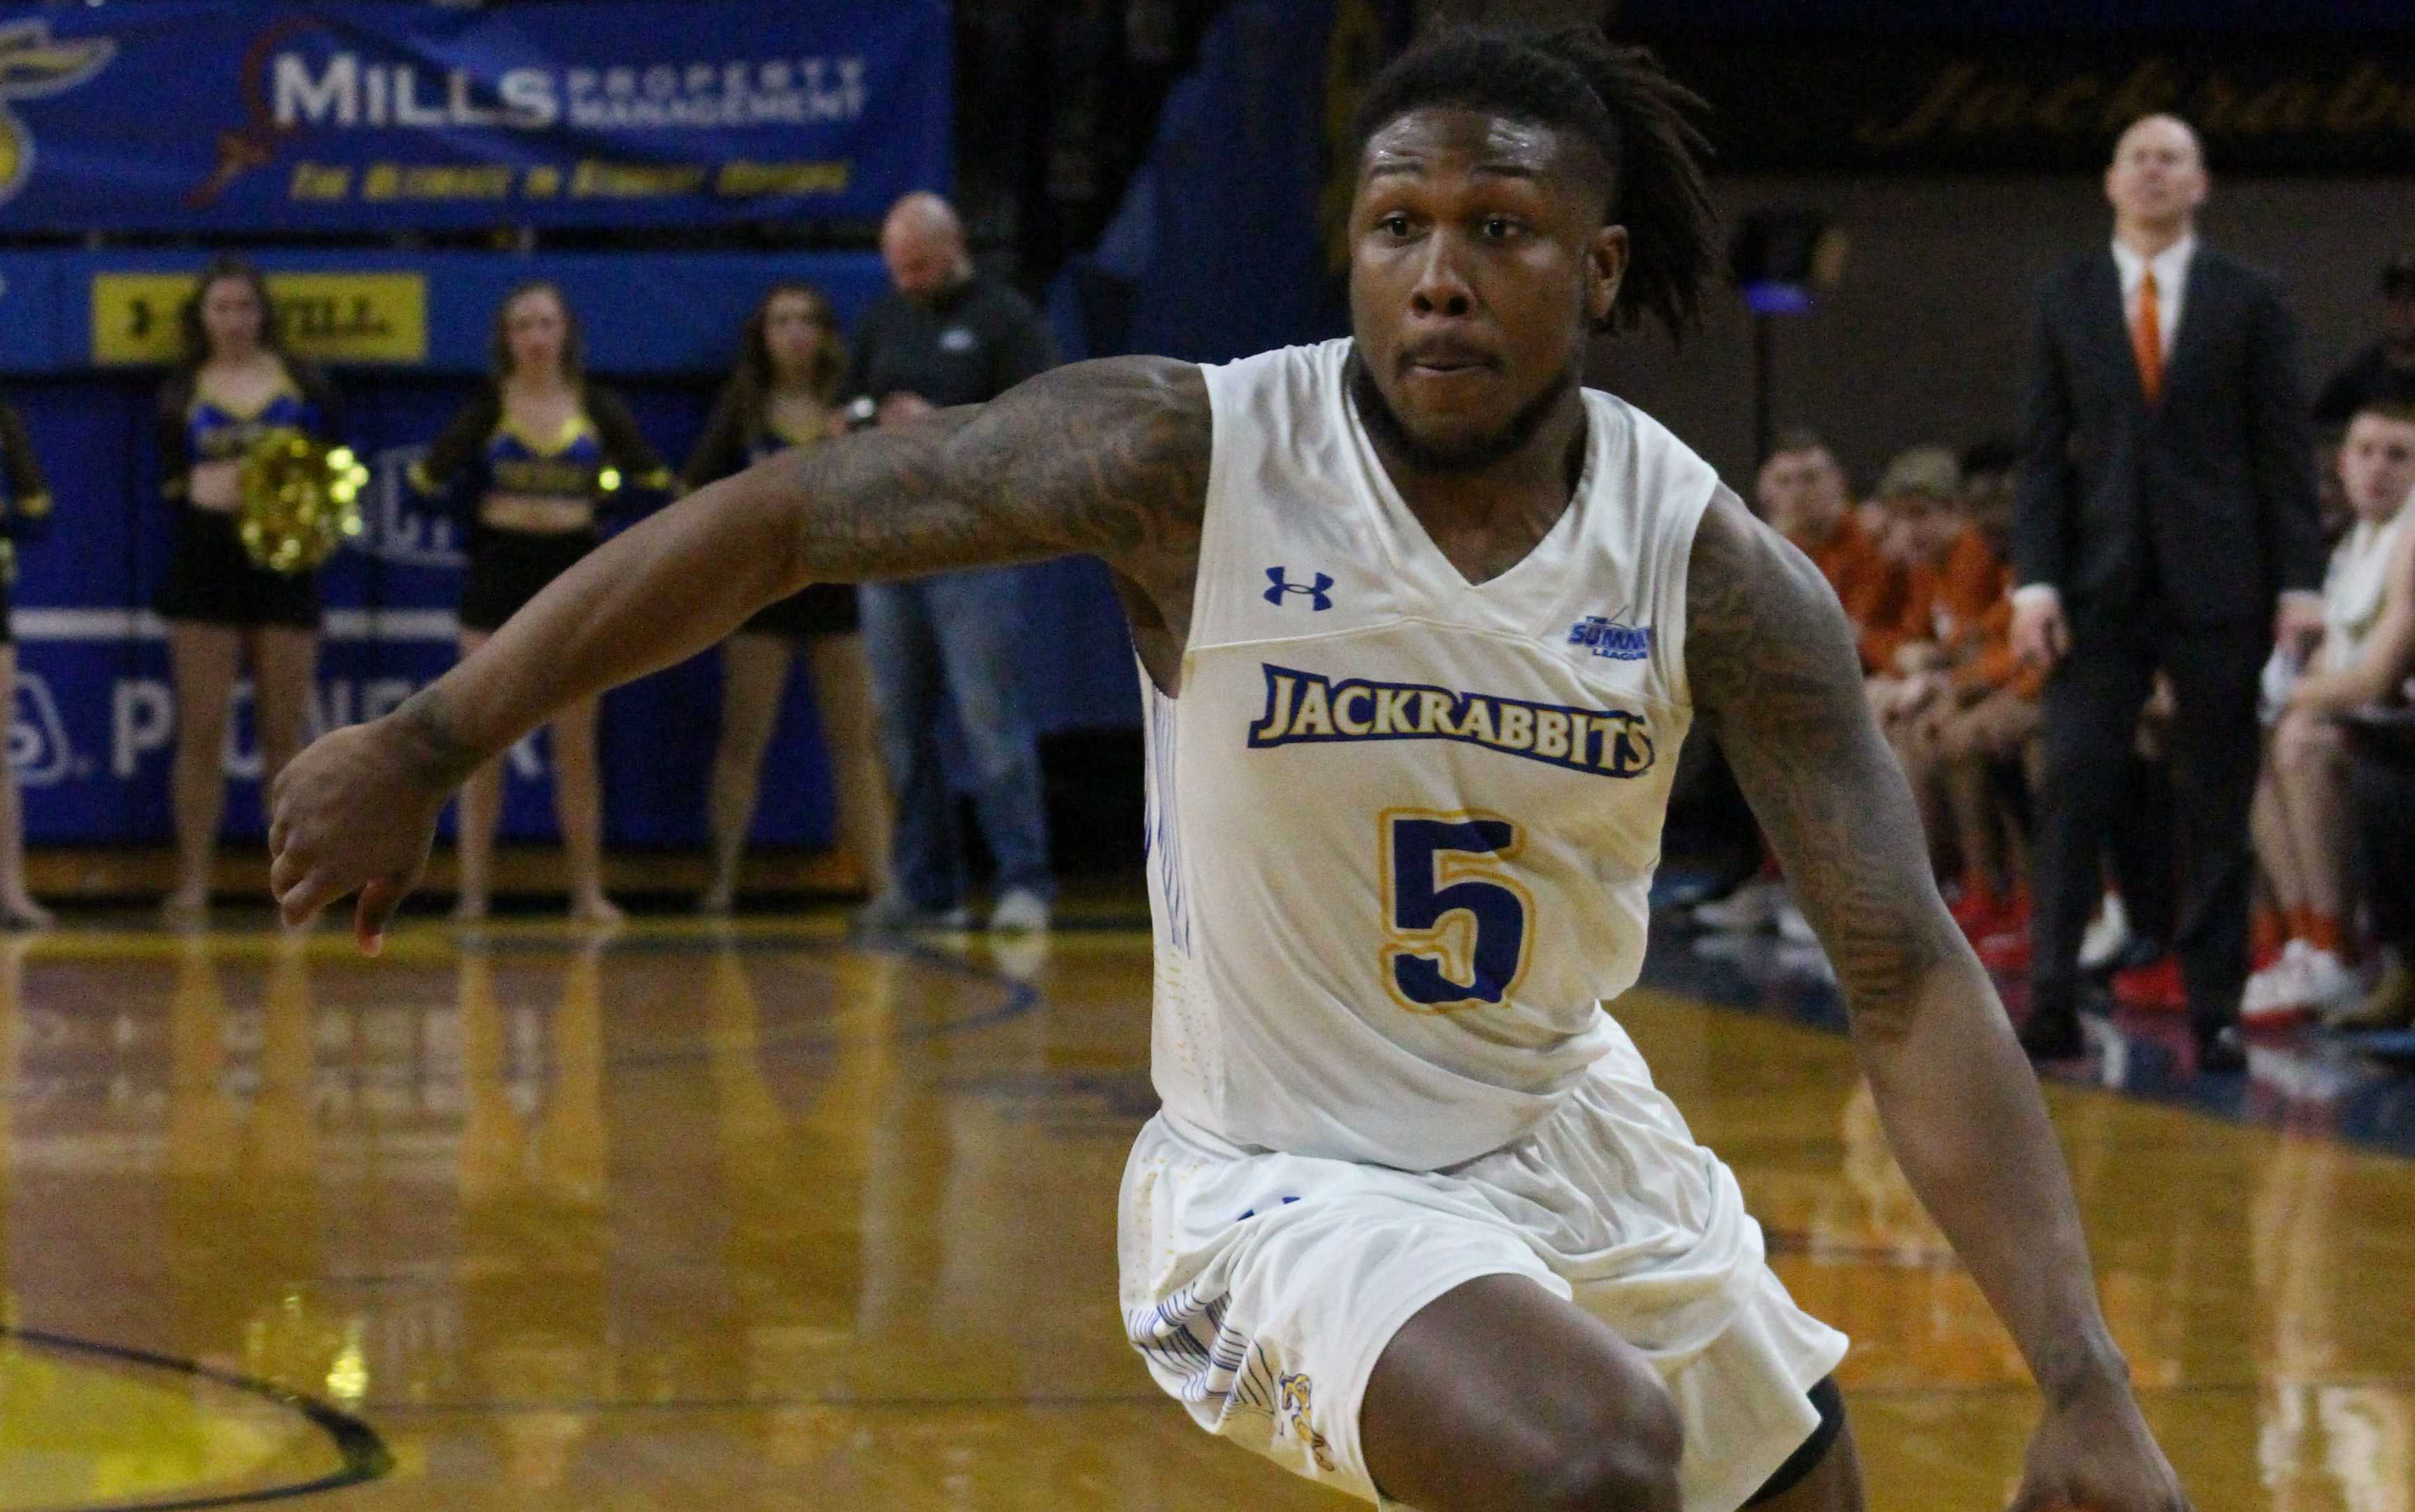 ABBY FULLENKAMP Freshman guard David Jenkins Jr. (5) blows past his defender in Thursday's game against USD. The Jacks have finished conference play and will begin Summit League tournament play against WIU at 6 p.m. March 3rd at the Denny Sanford Premier Center.